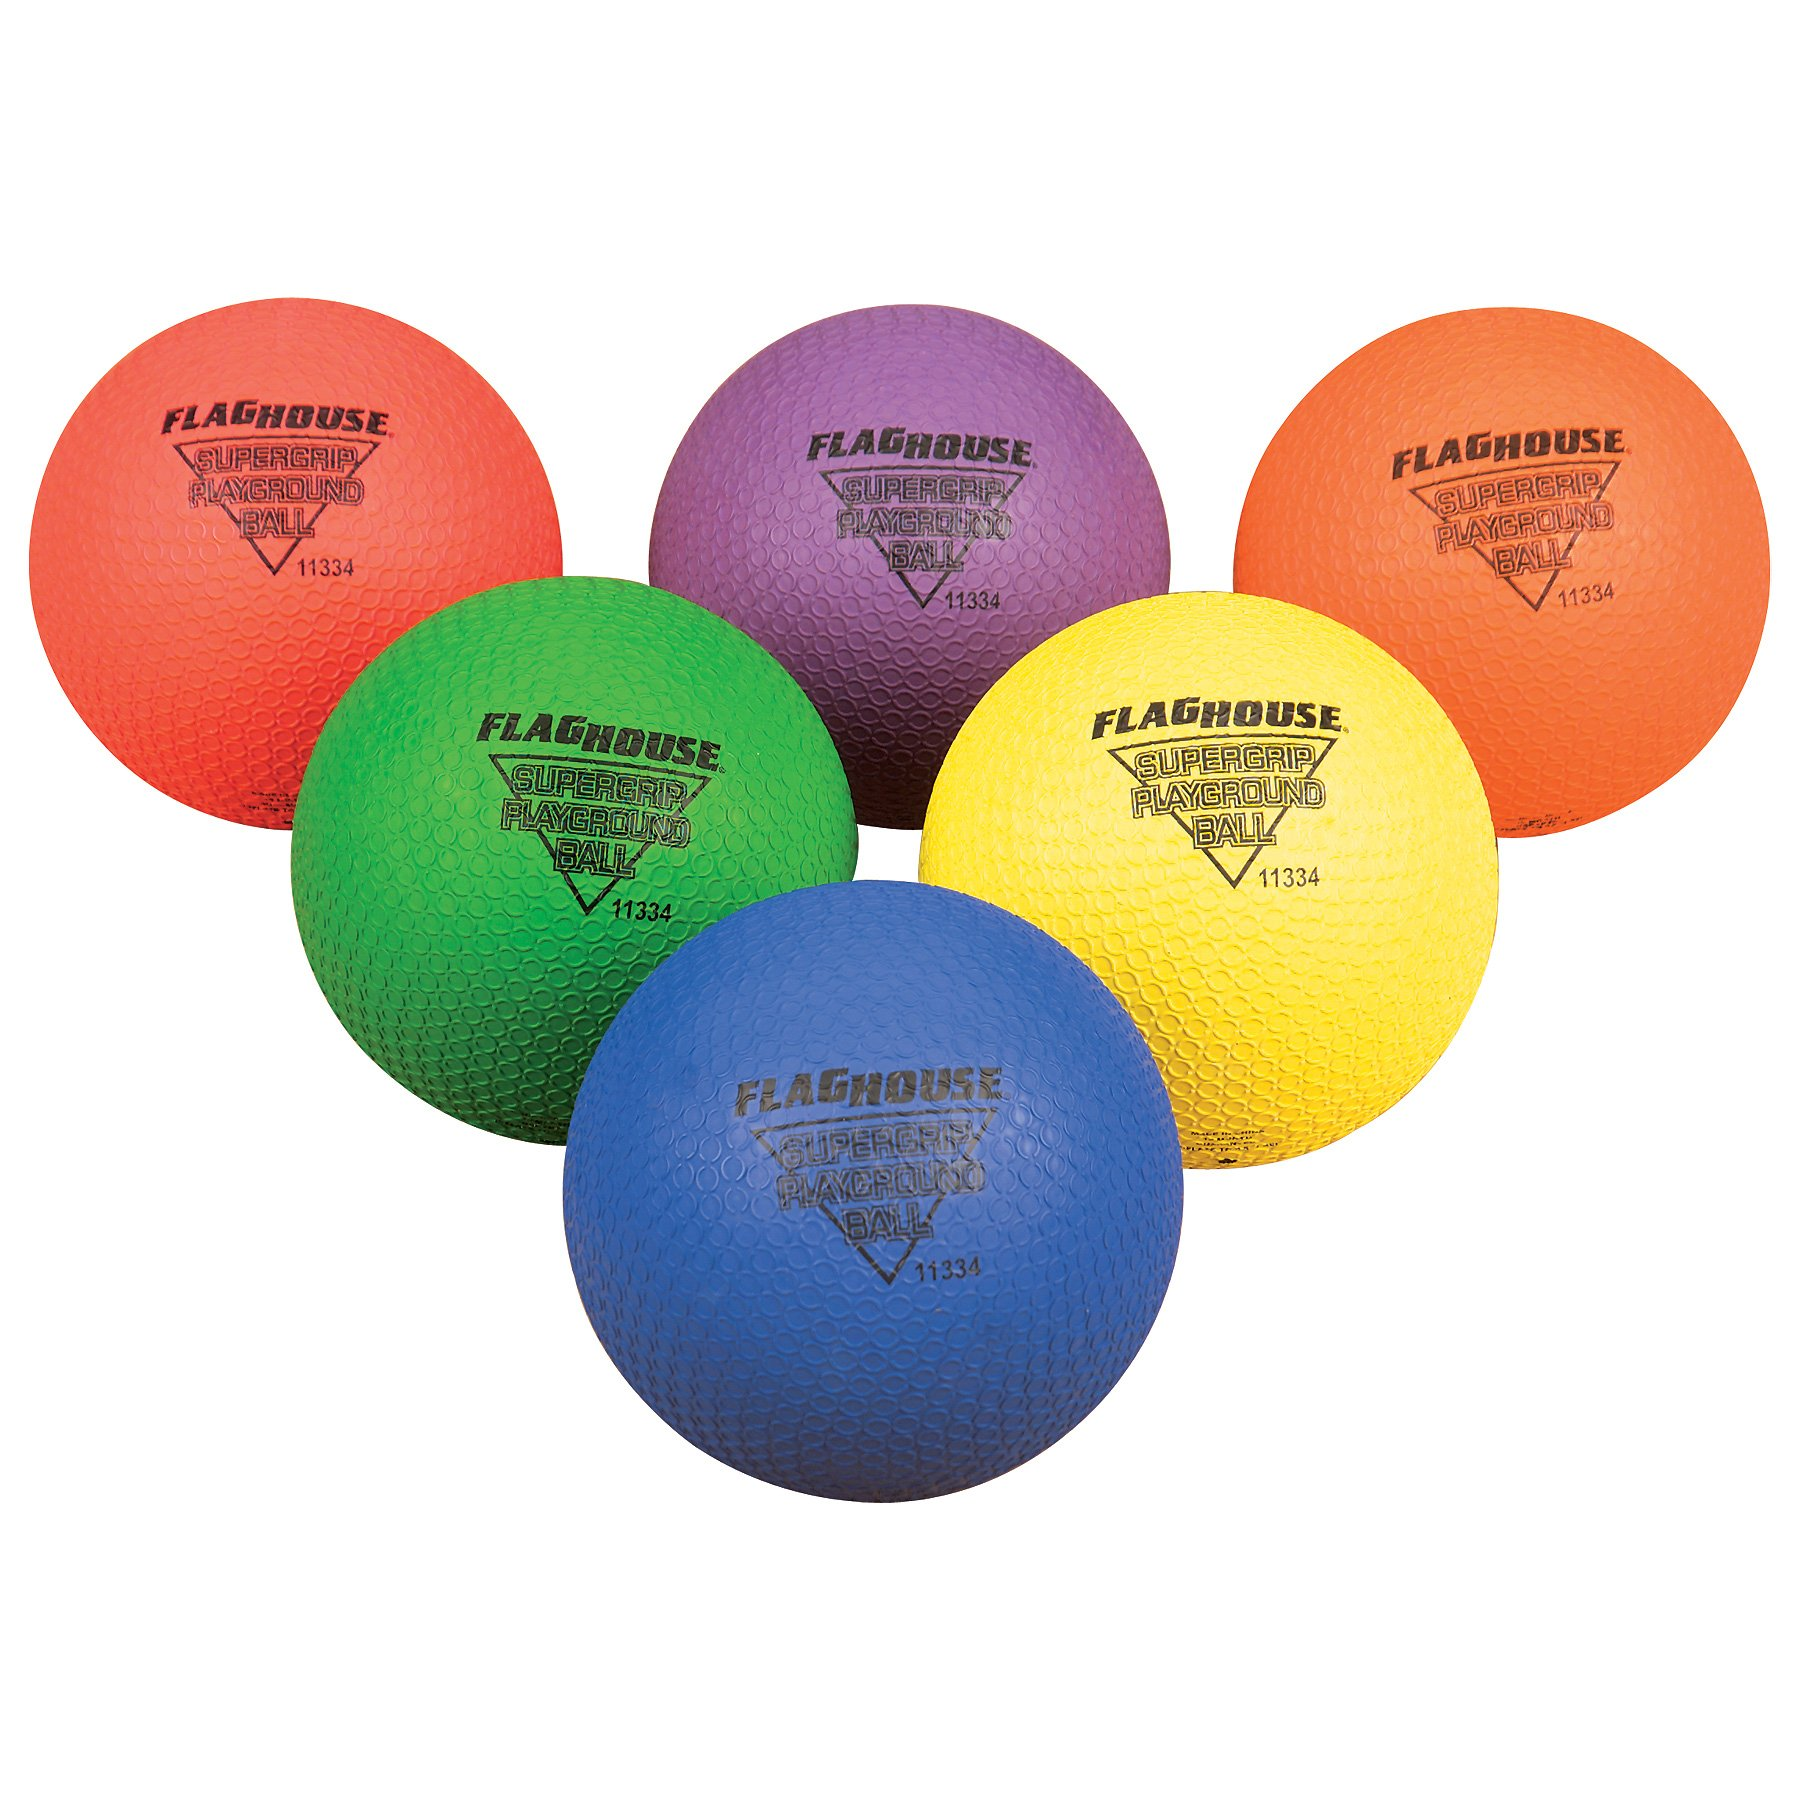 FLYING COLORS SUPERGRIP Playground Ball Set - 7'' by FlagHouse Inc.